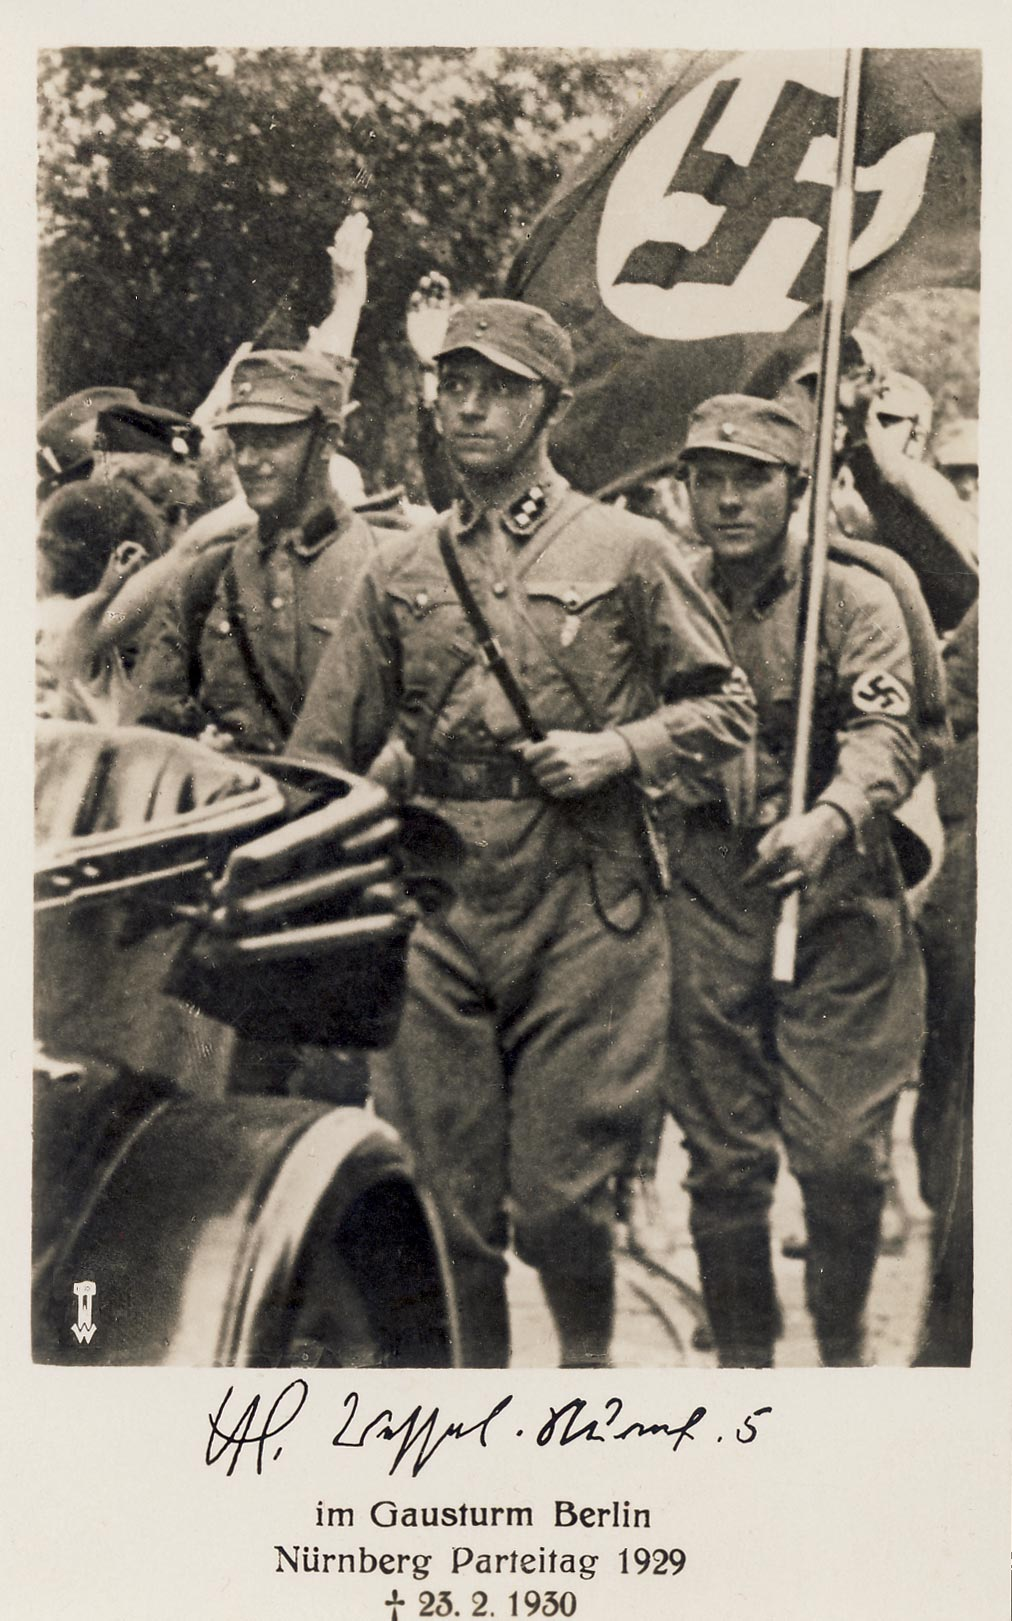 Horst Wessel postcard. Nürnberg Party Rally 1929